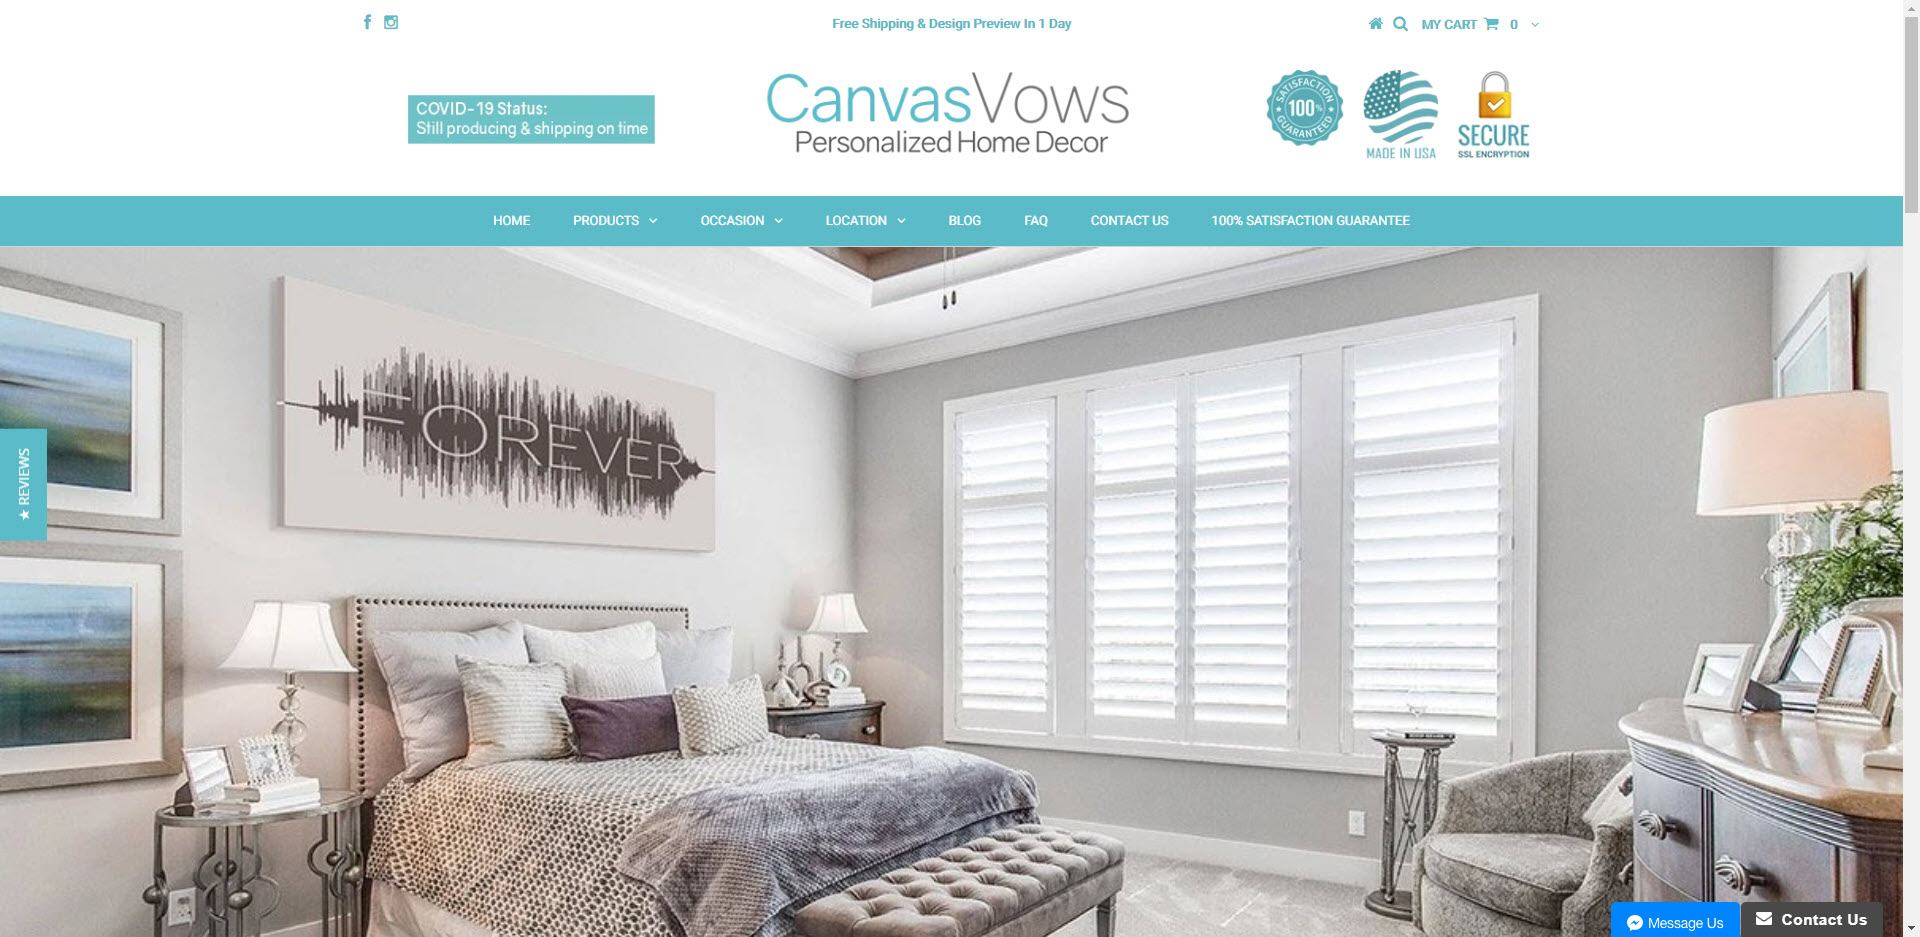 Home Decor Affiliate programs - Canva Vows Home